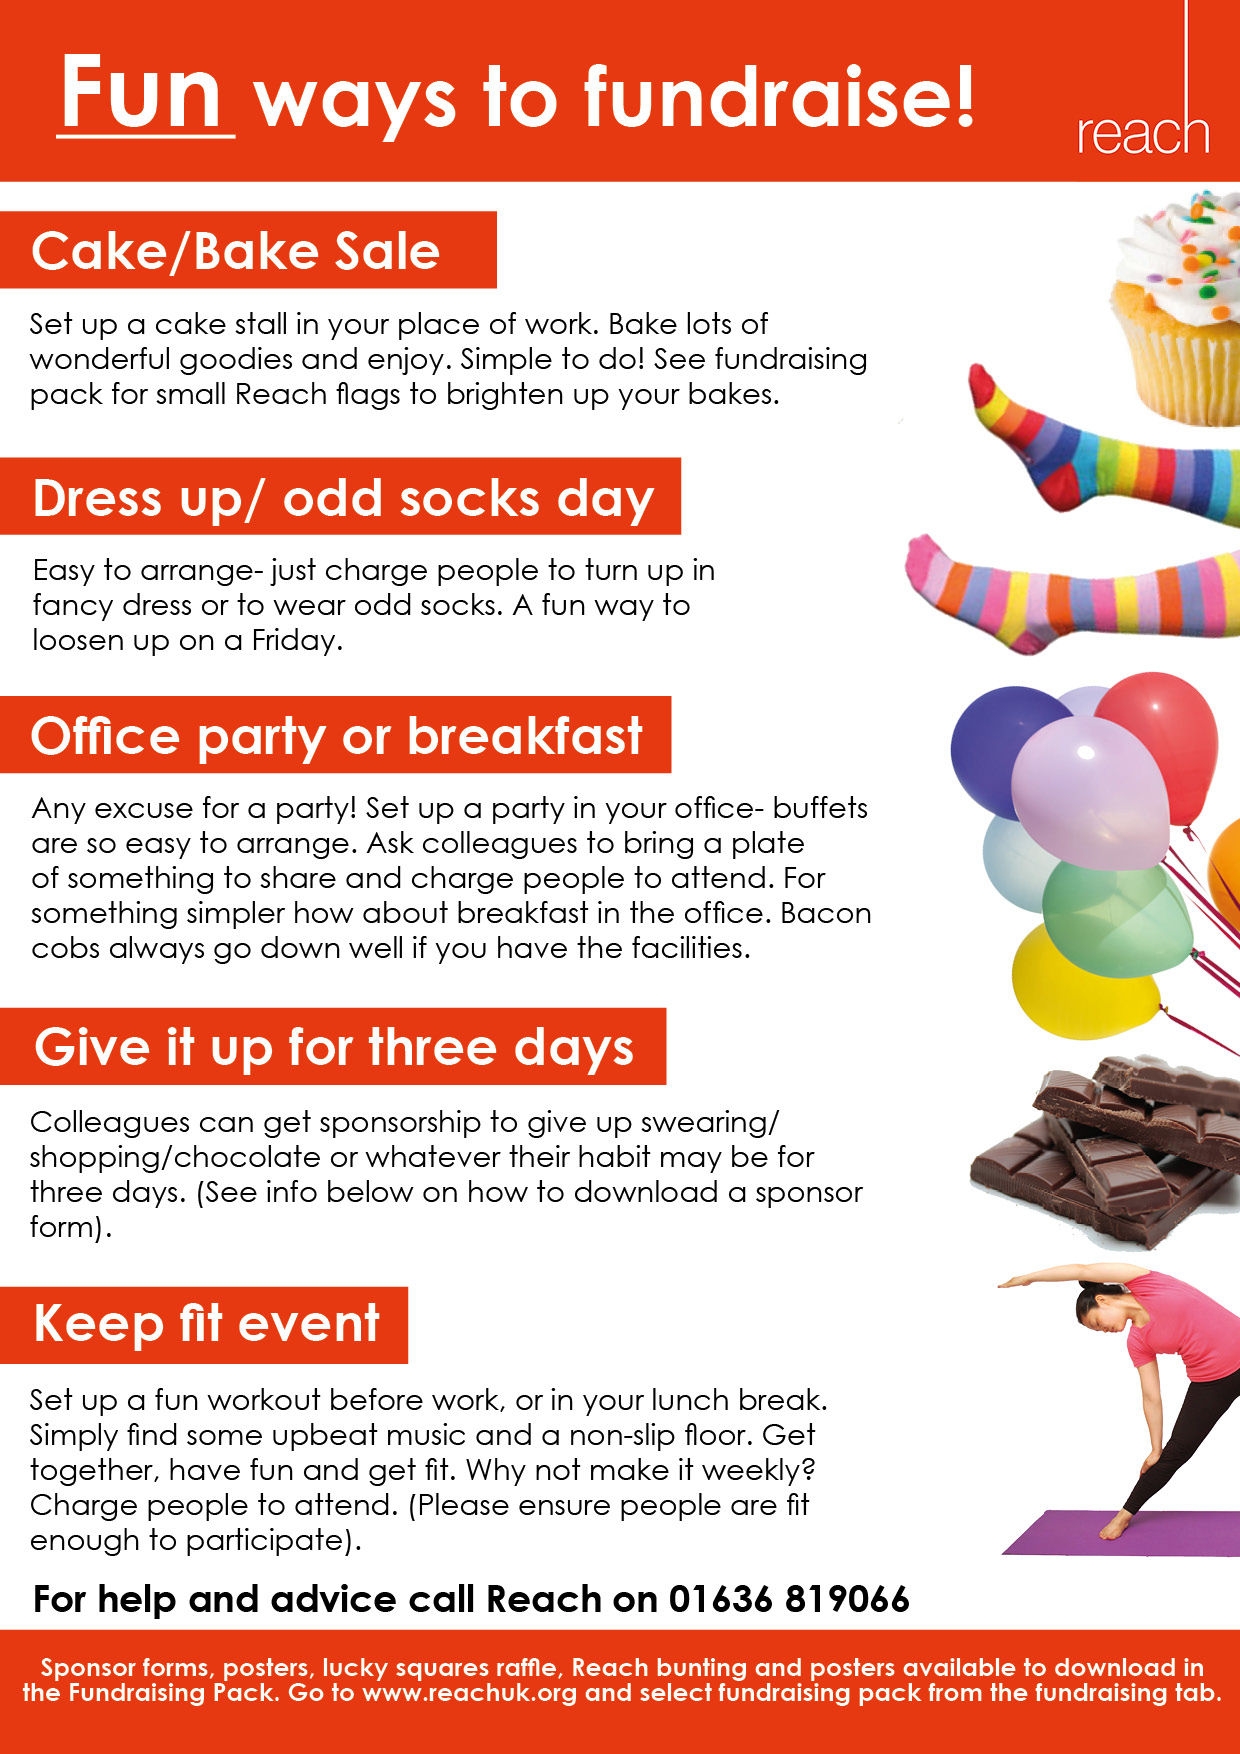 Fun ways to fundraise for businesses